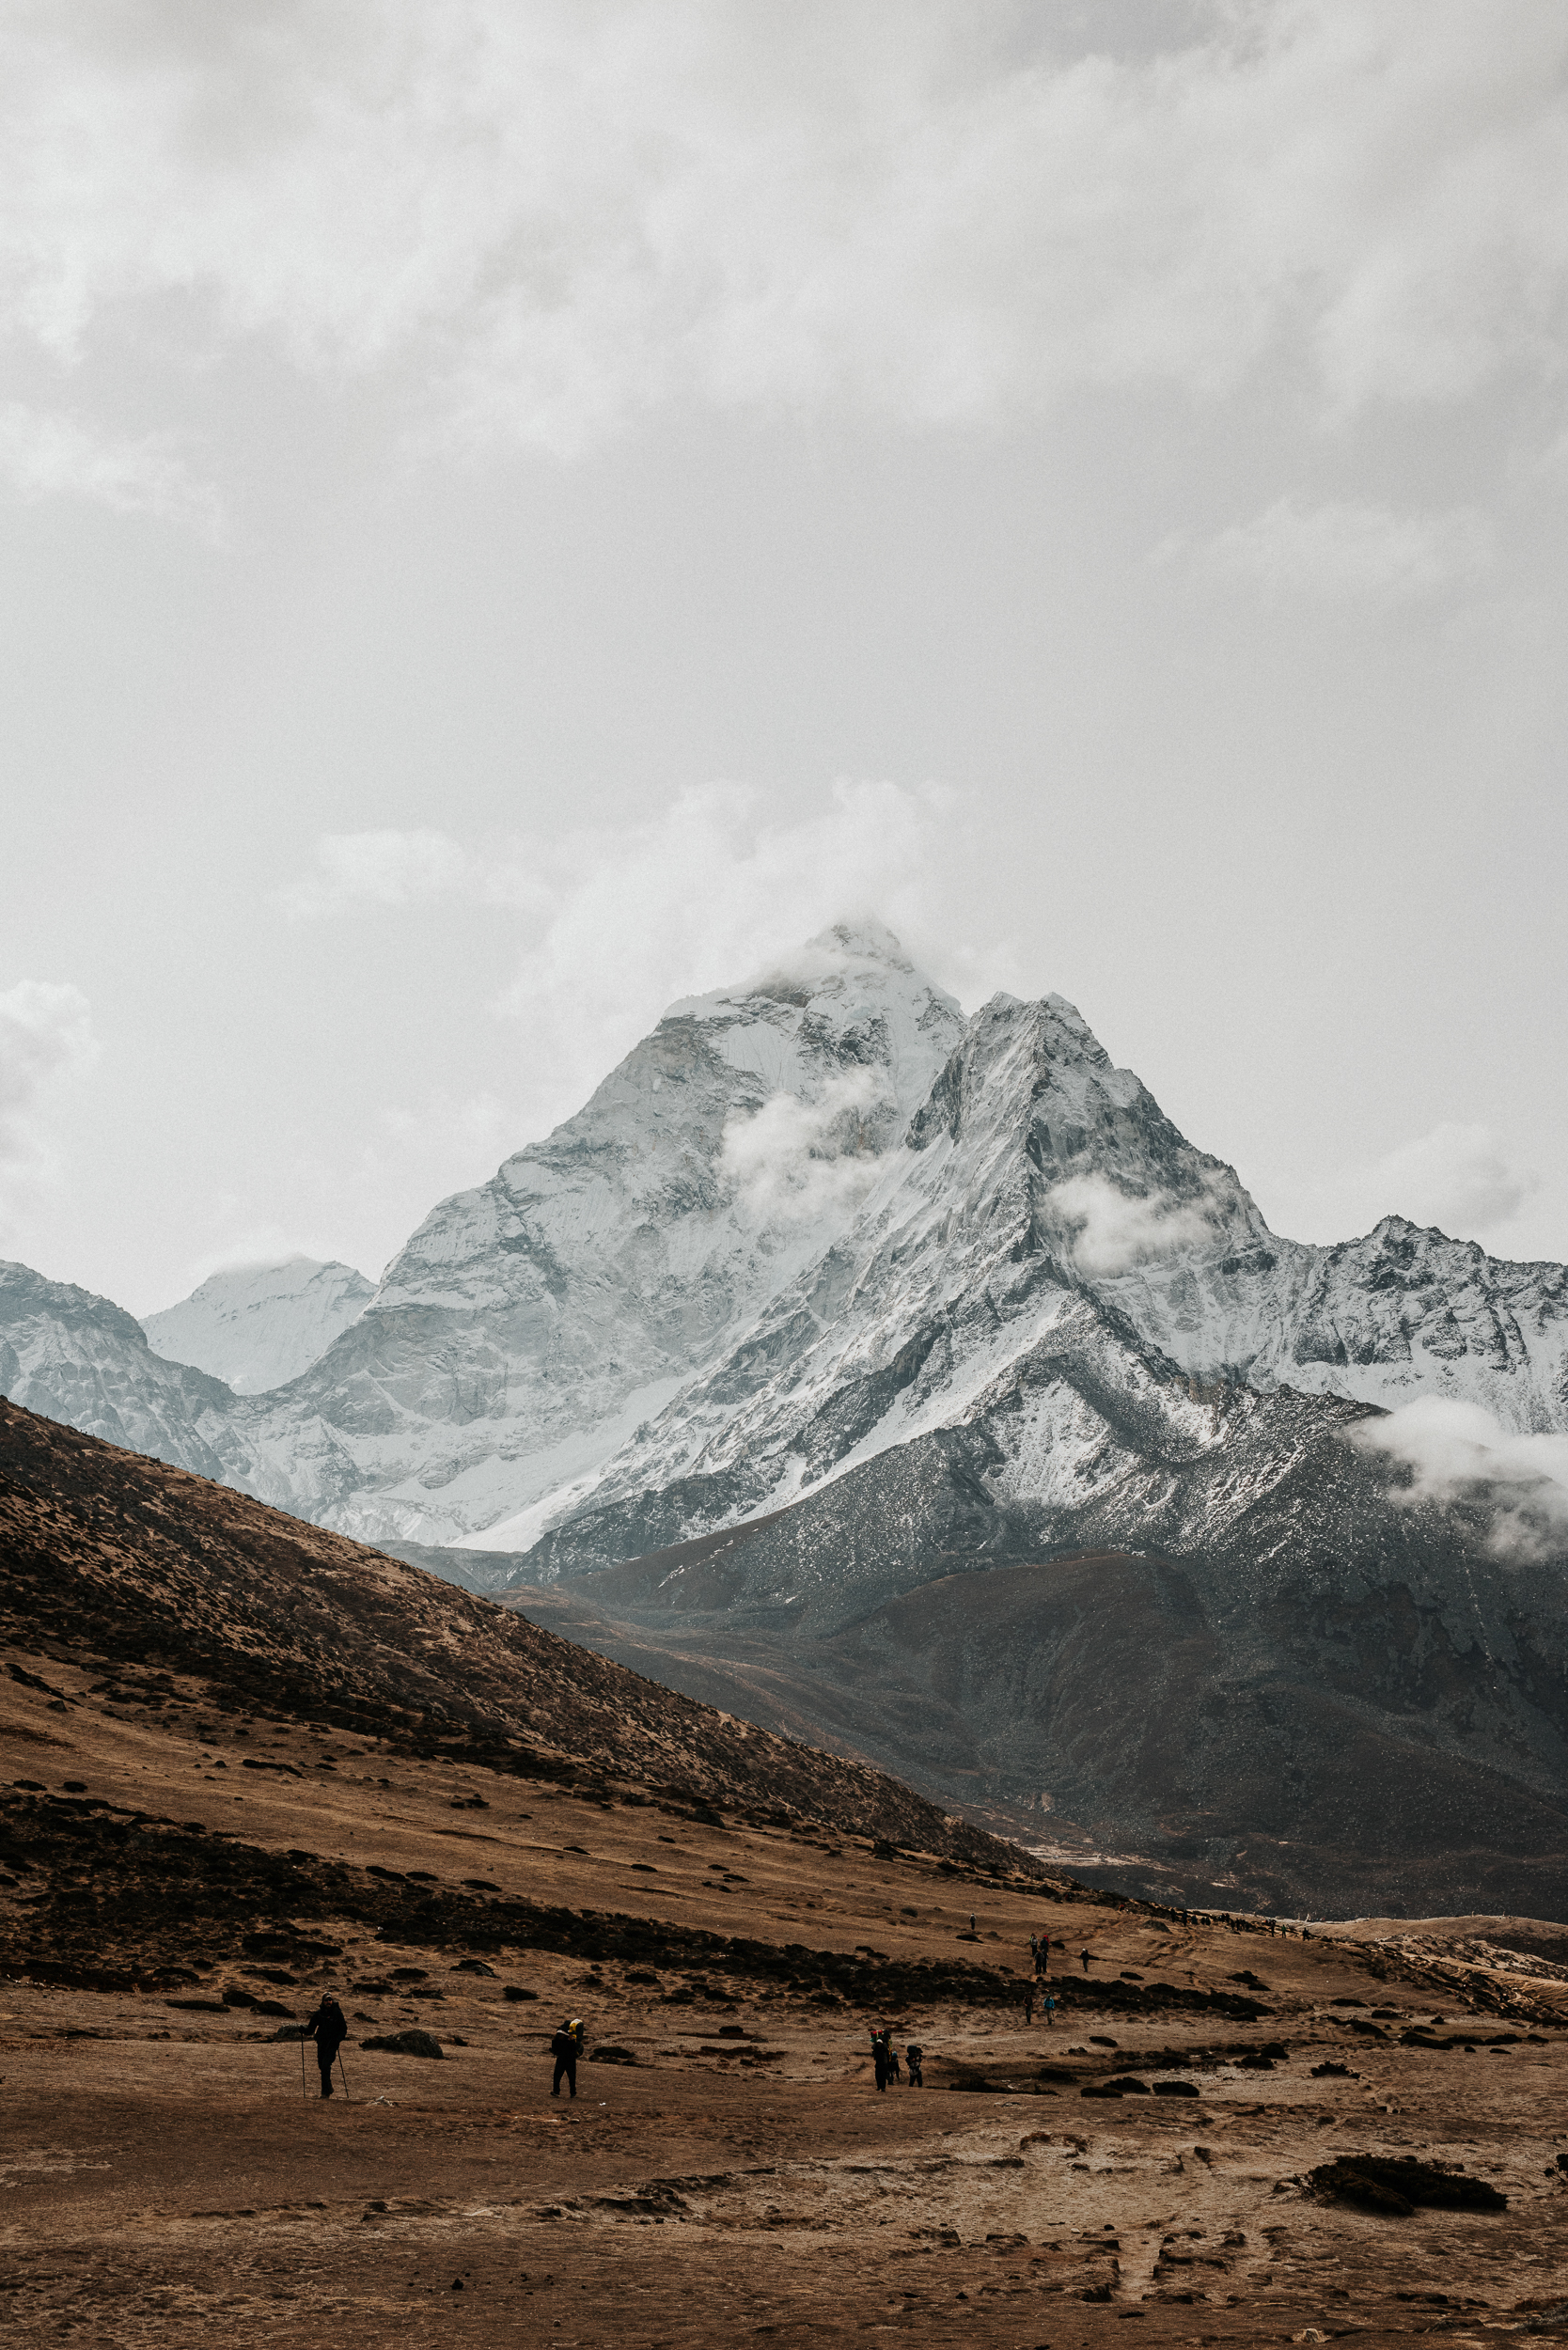 Nepal_EverestBaseCamp_2019_TaraShupe_Photography_DSC_4058.jpg